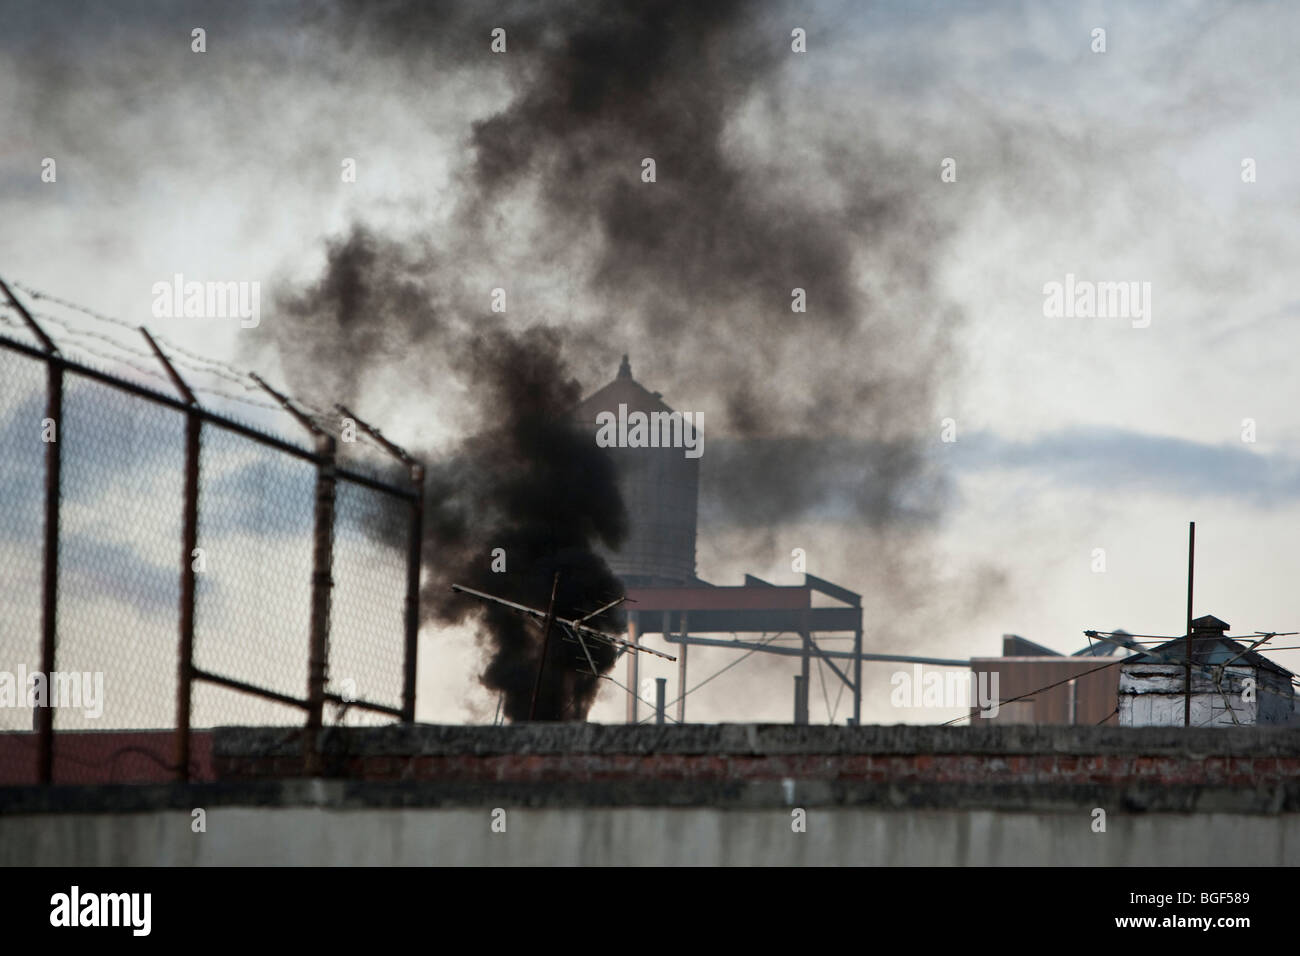 Black smoke belches out from the top of a building on West 143rd street in New York, USA, 28 December 2009. Stock Photo